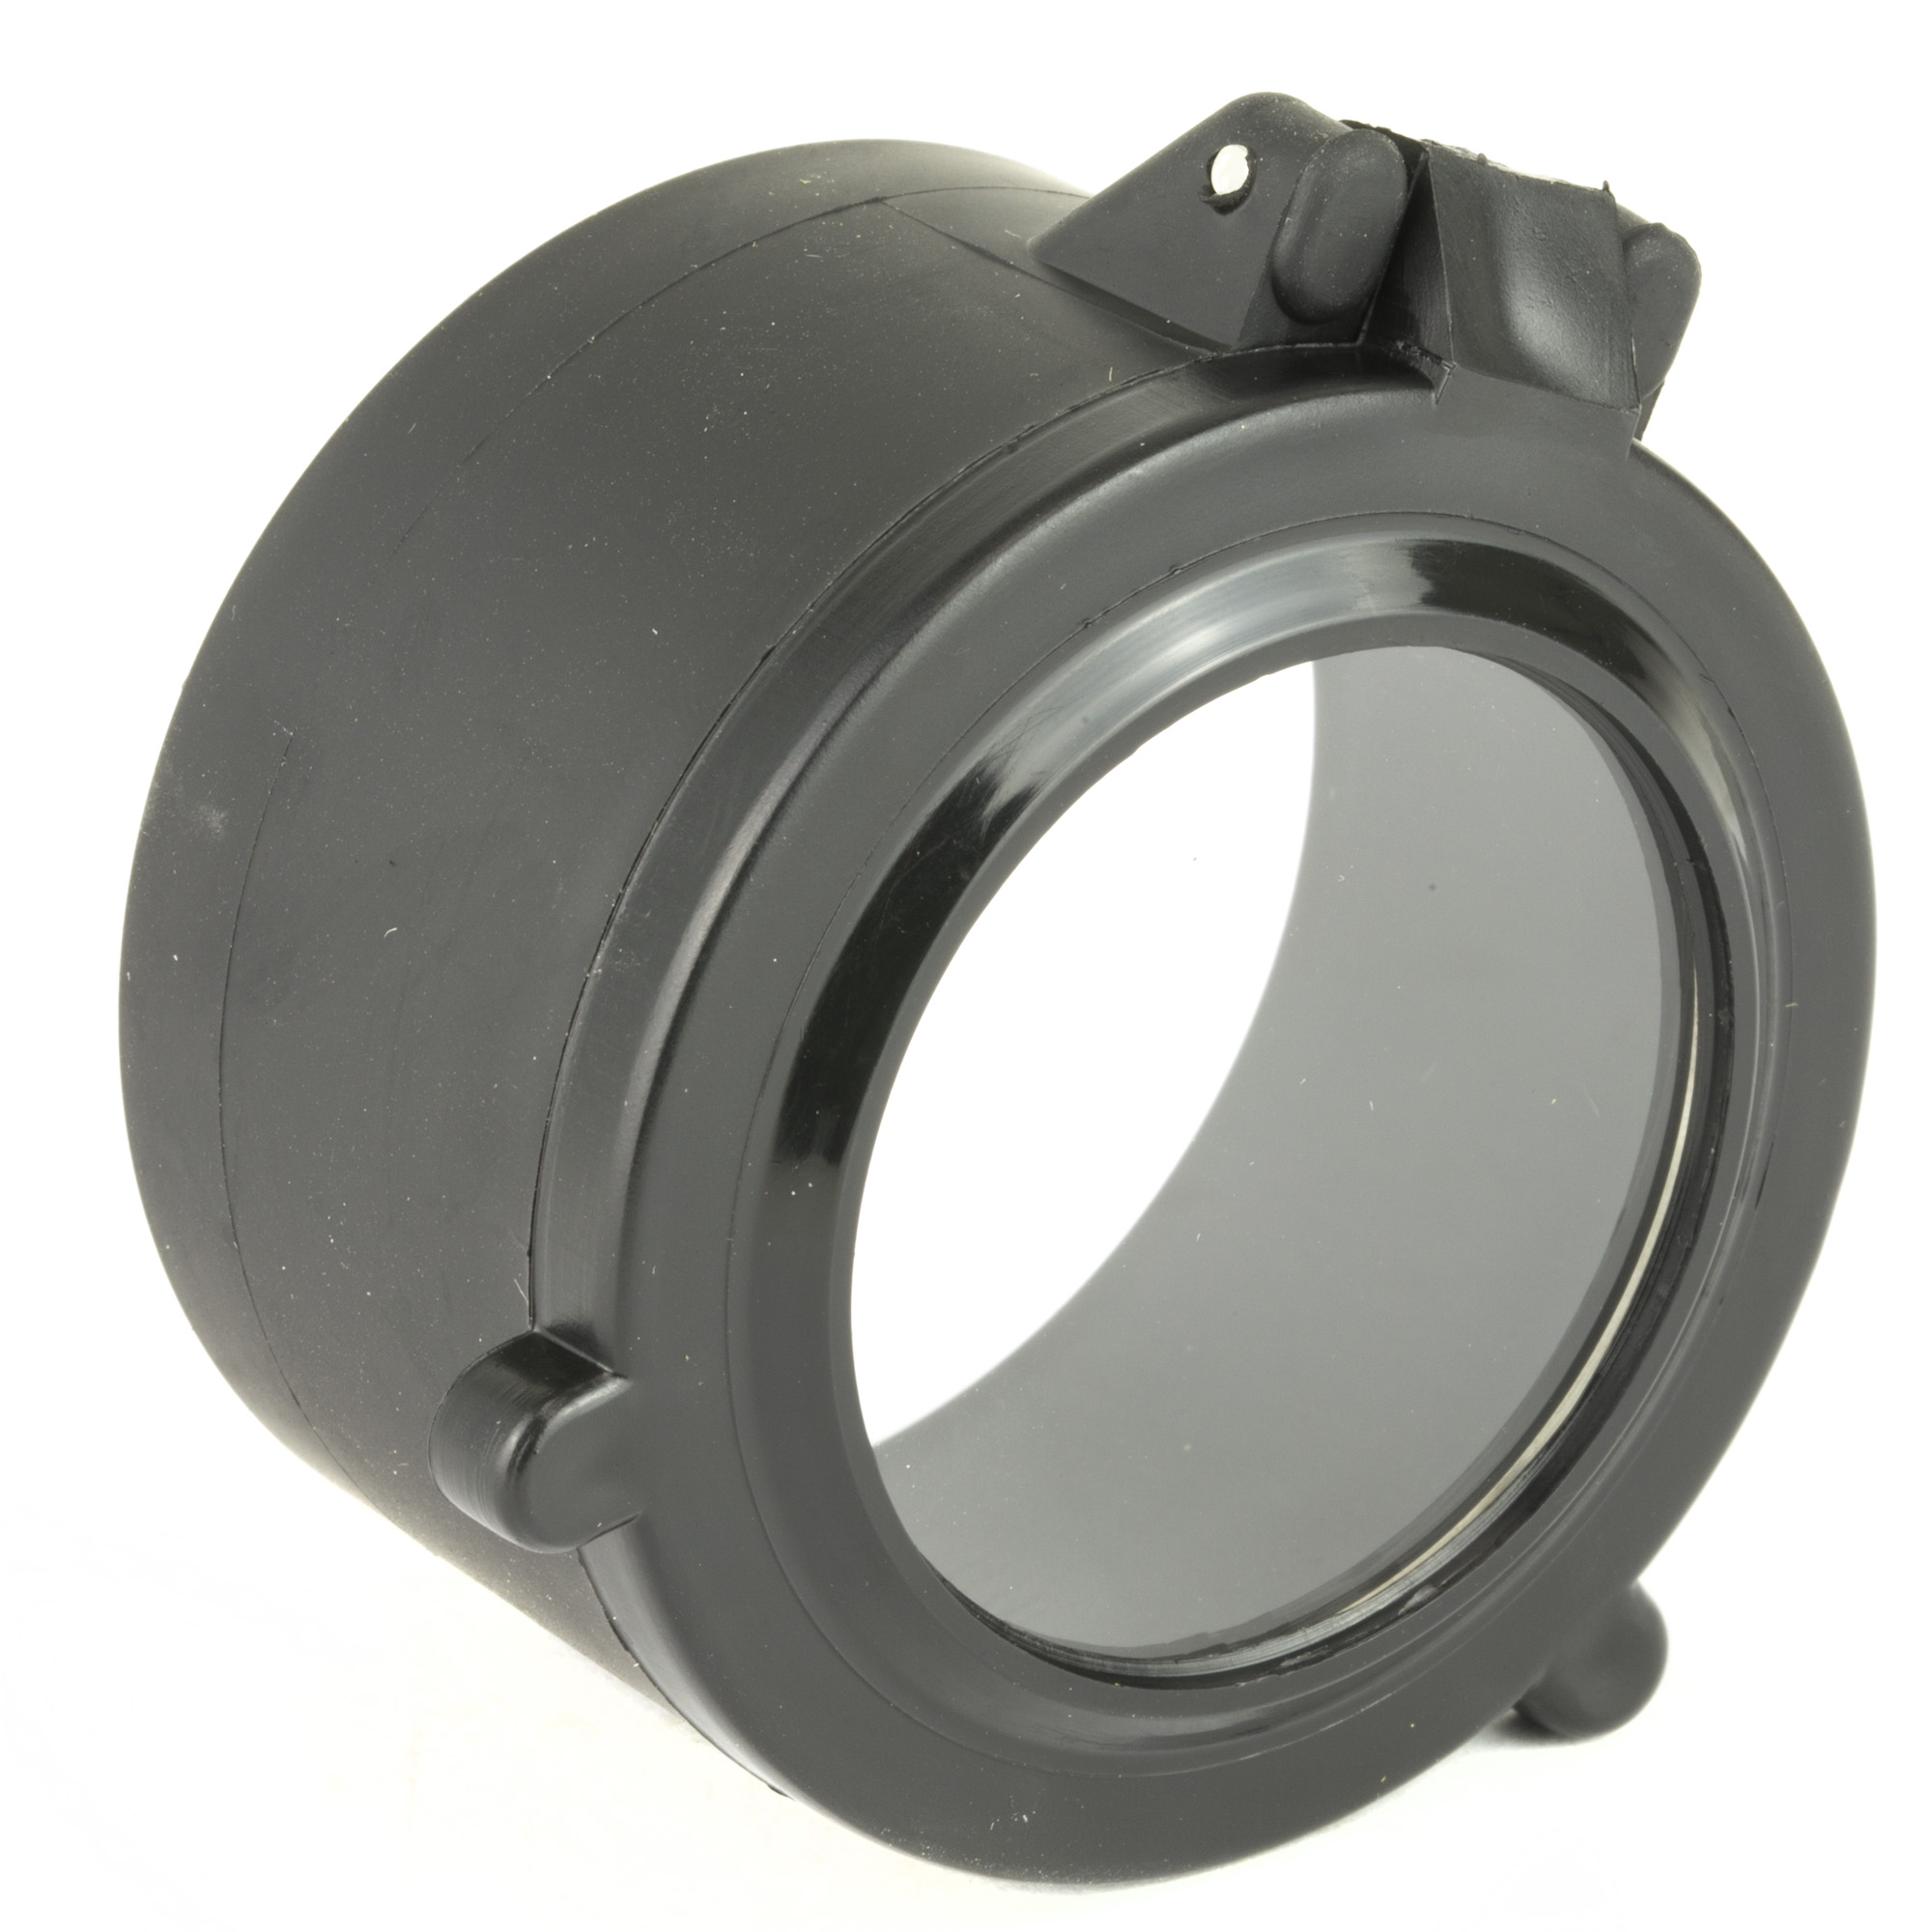 Butler Creek's famous Flip-Open lens cover design with clear windows for fast target acquisition at close to medium ranges.